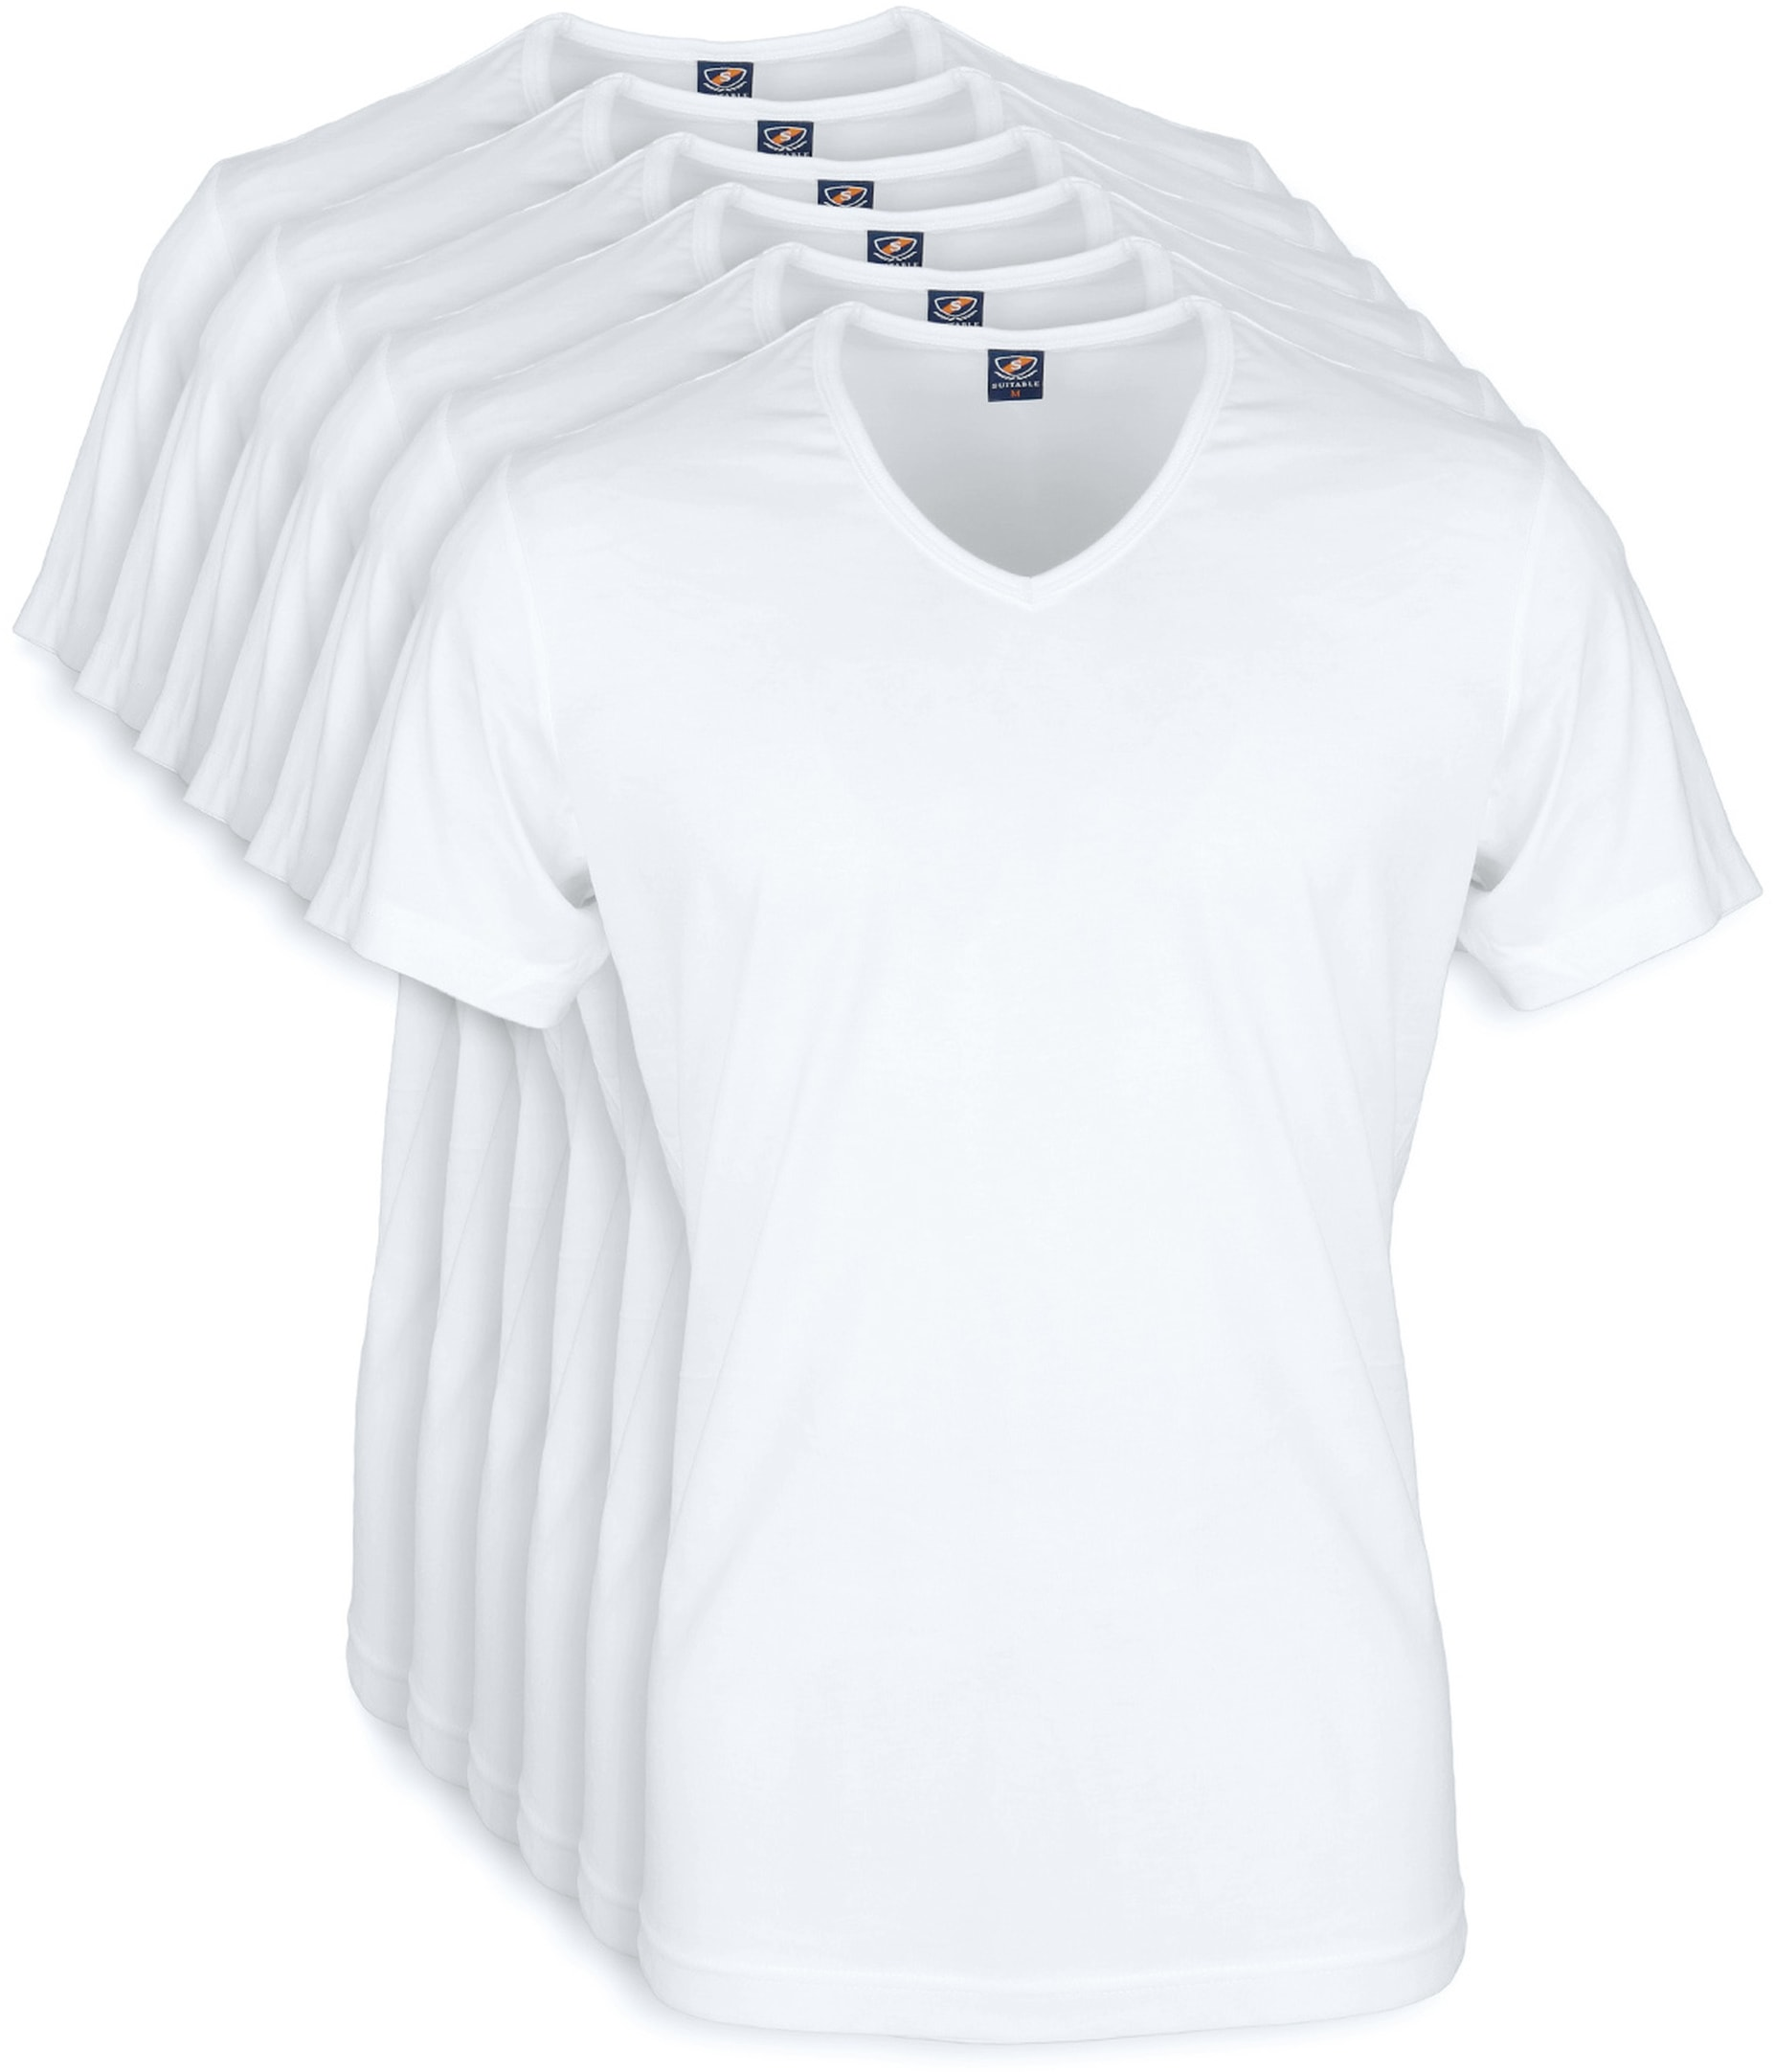 White T-shirt 6-Pack V-Neck foto 0